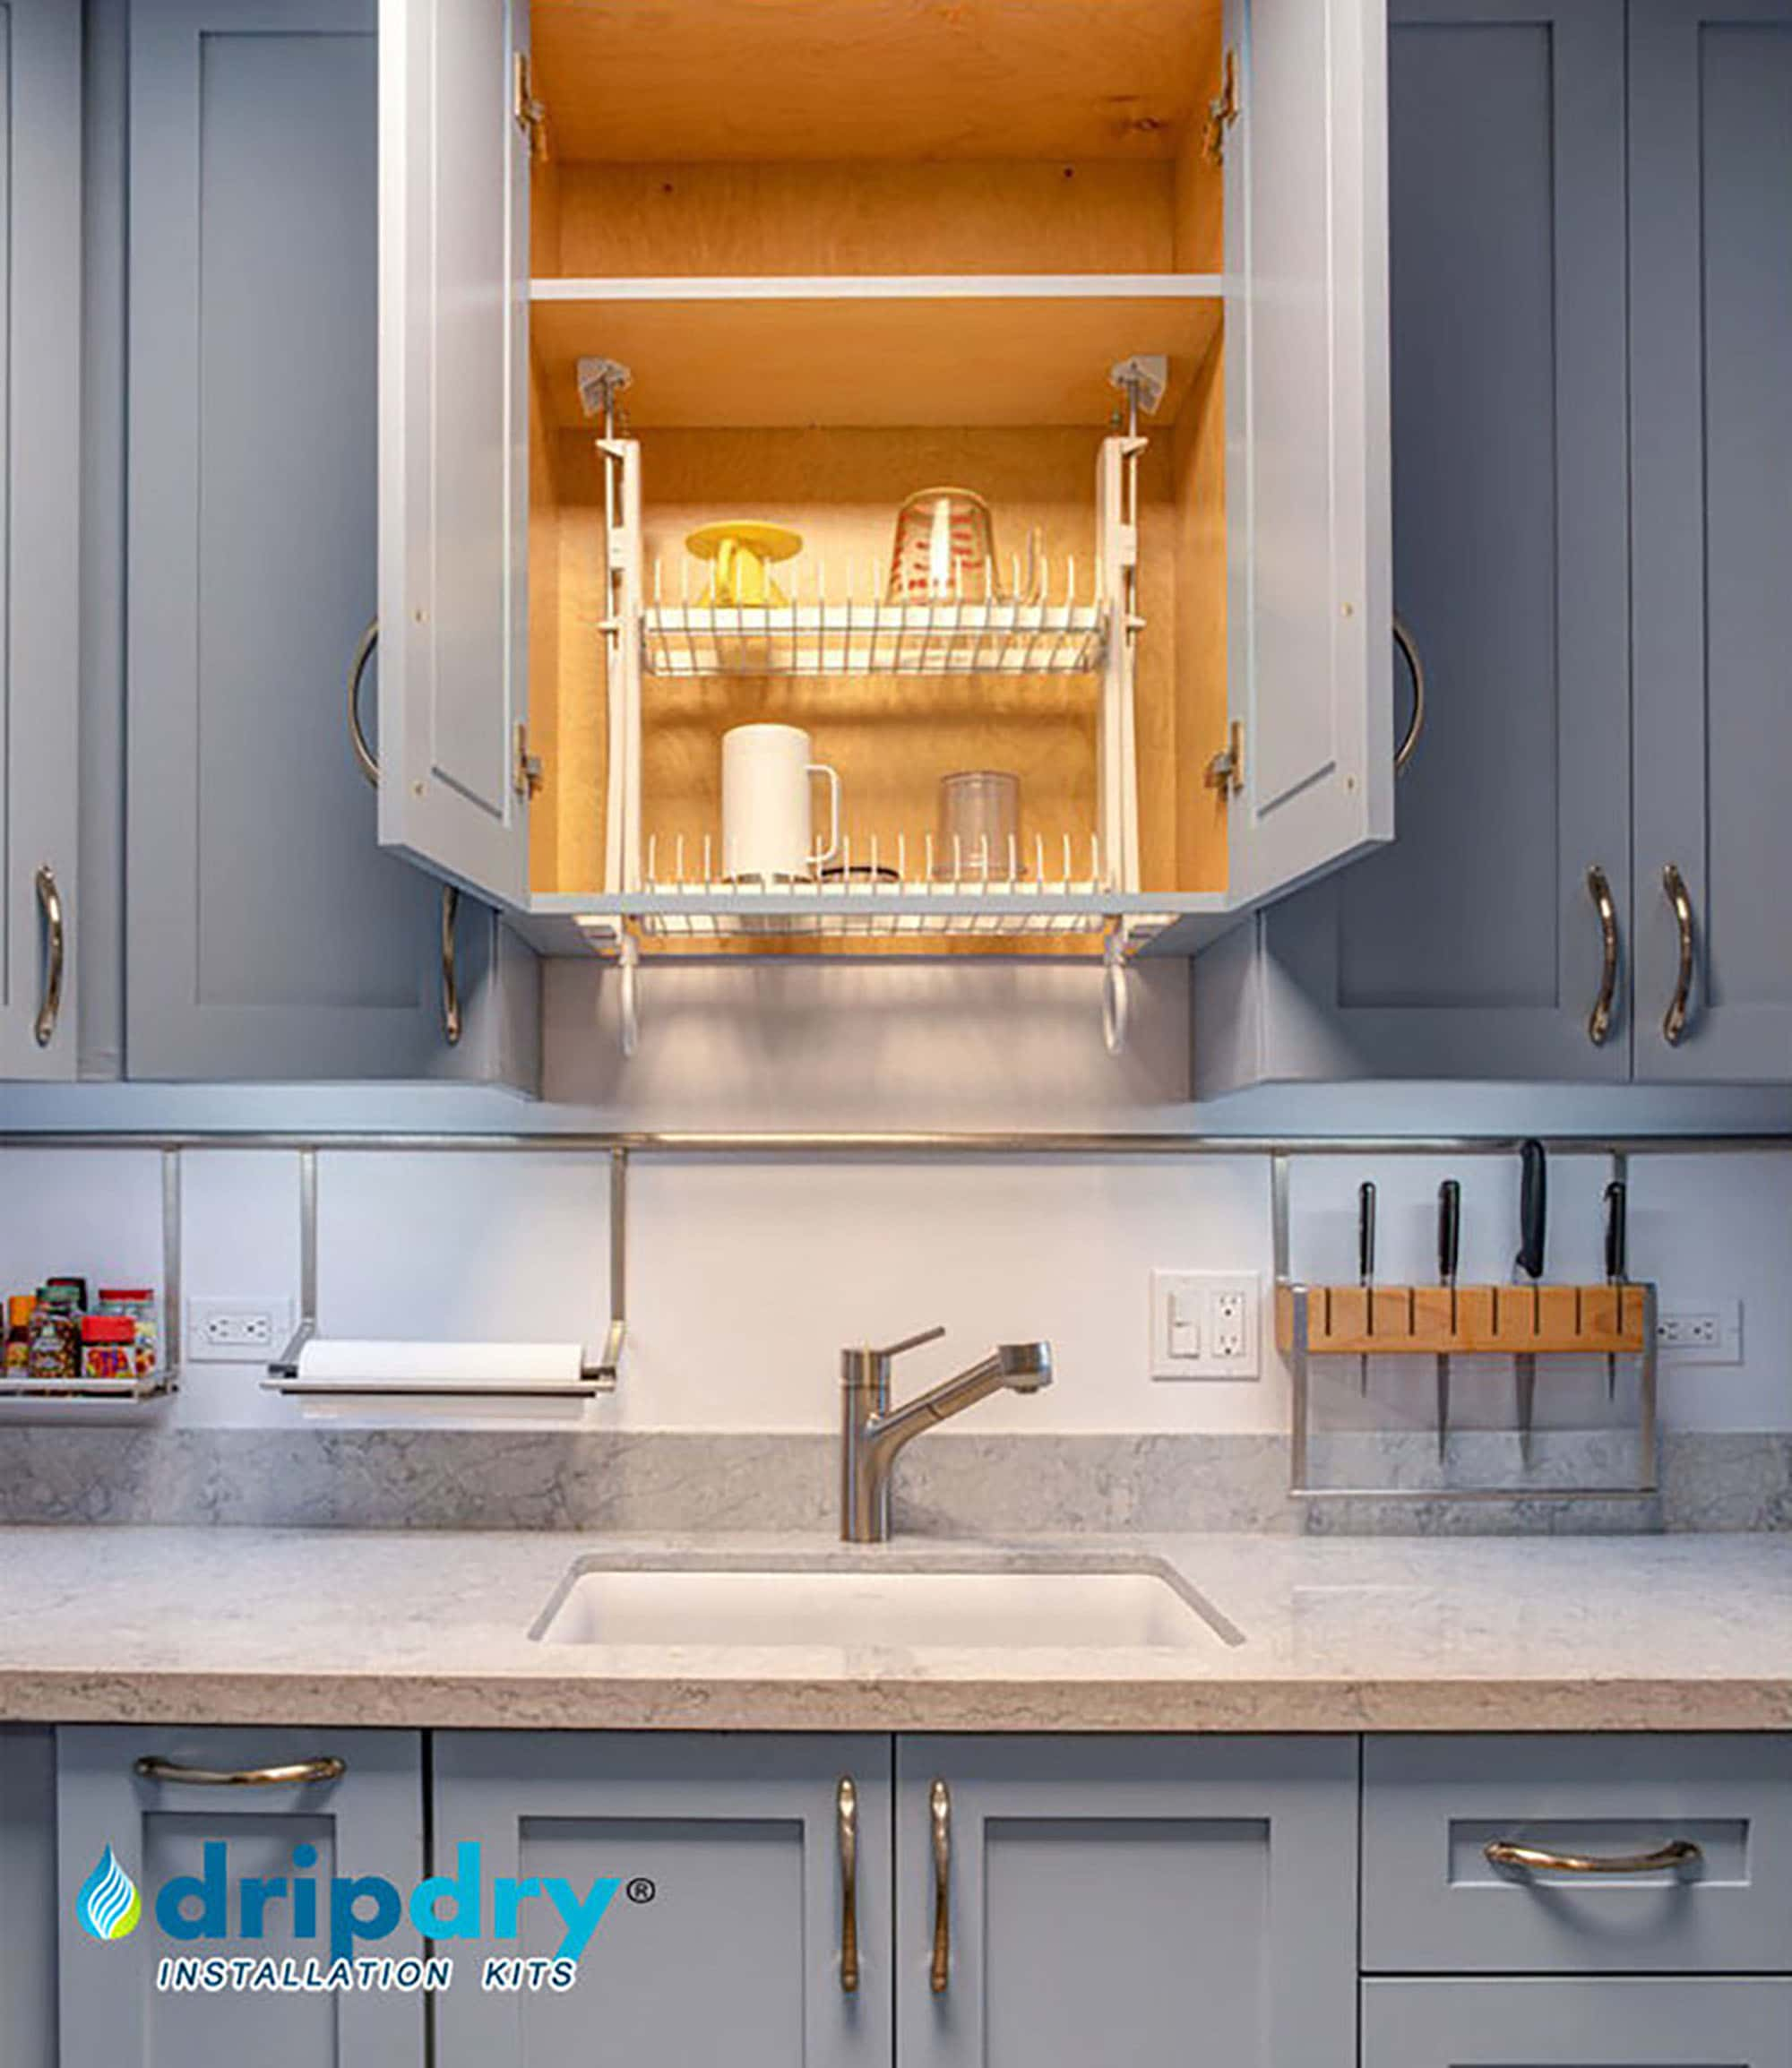 The DripDry cabinet dish rack is installed in a framed customized stock cabinet on bottom frame. Upper position with sink below.